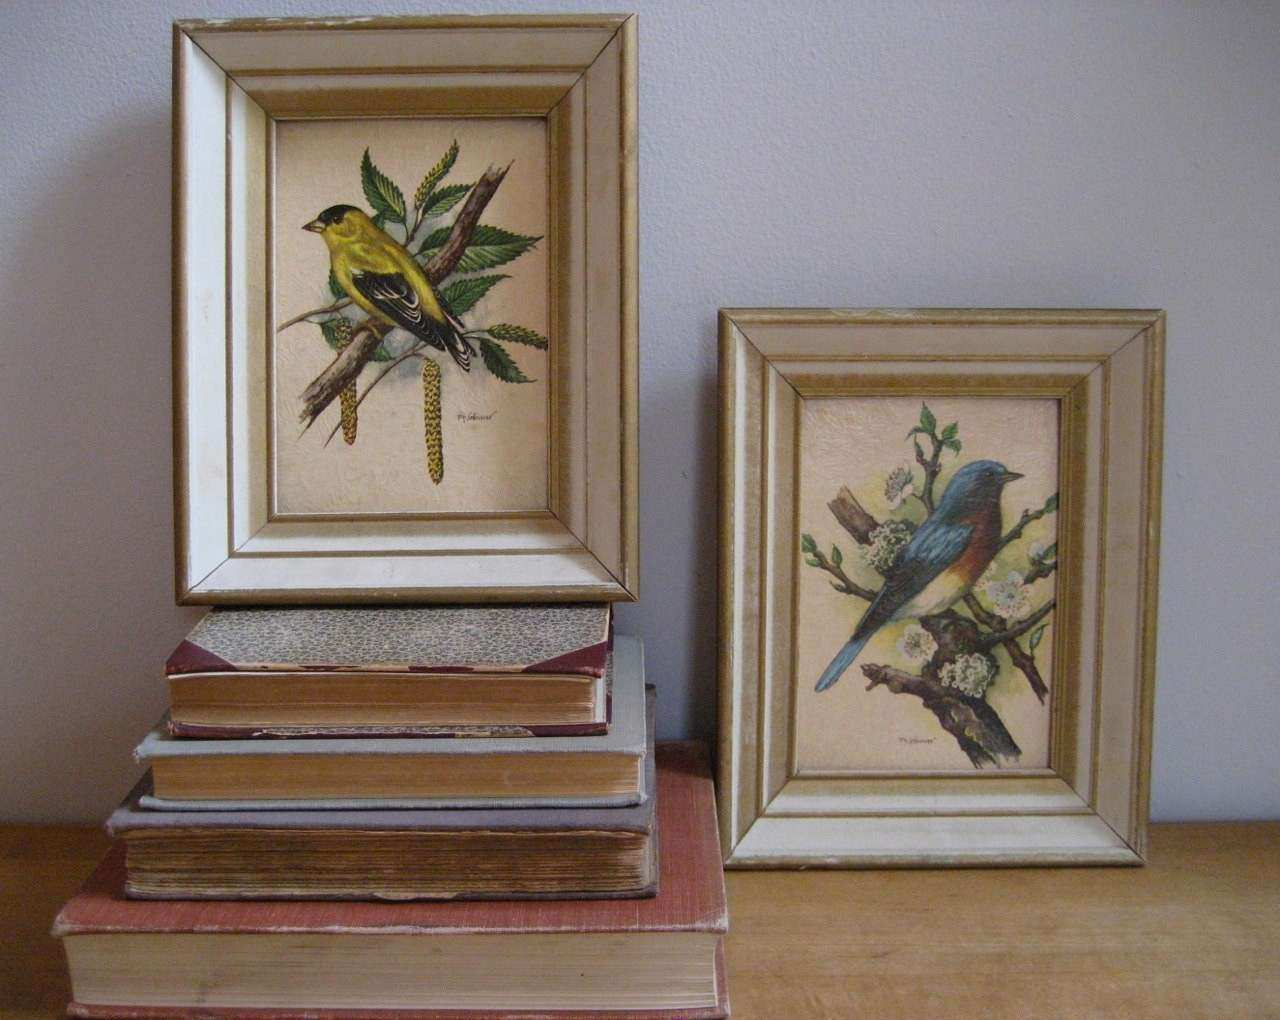 Vintage Pair of Framed Bird Prints